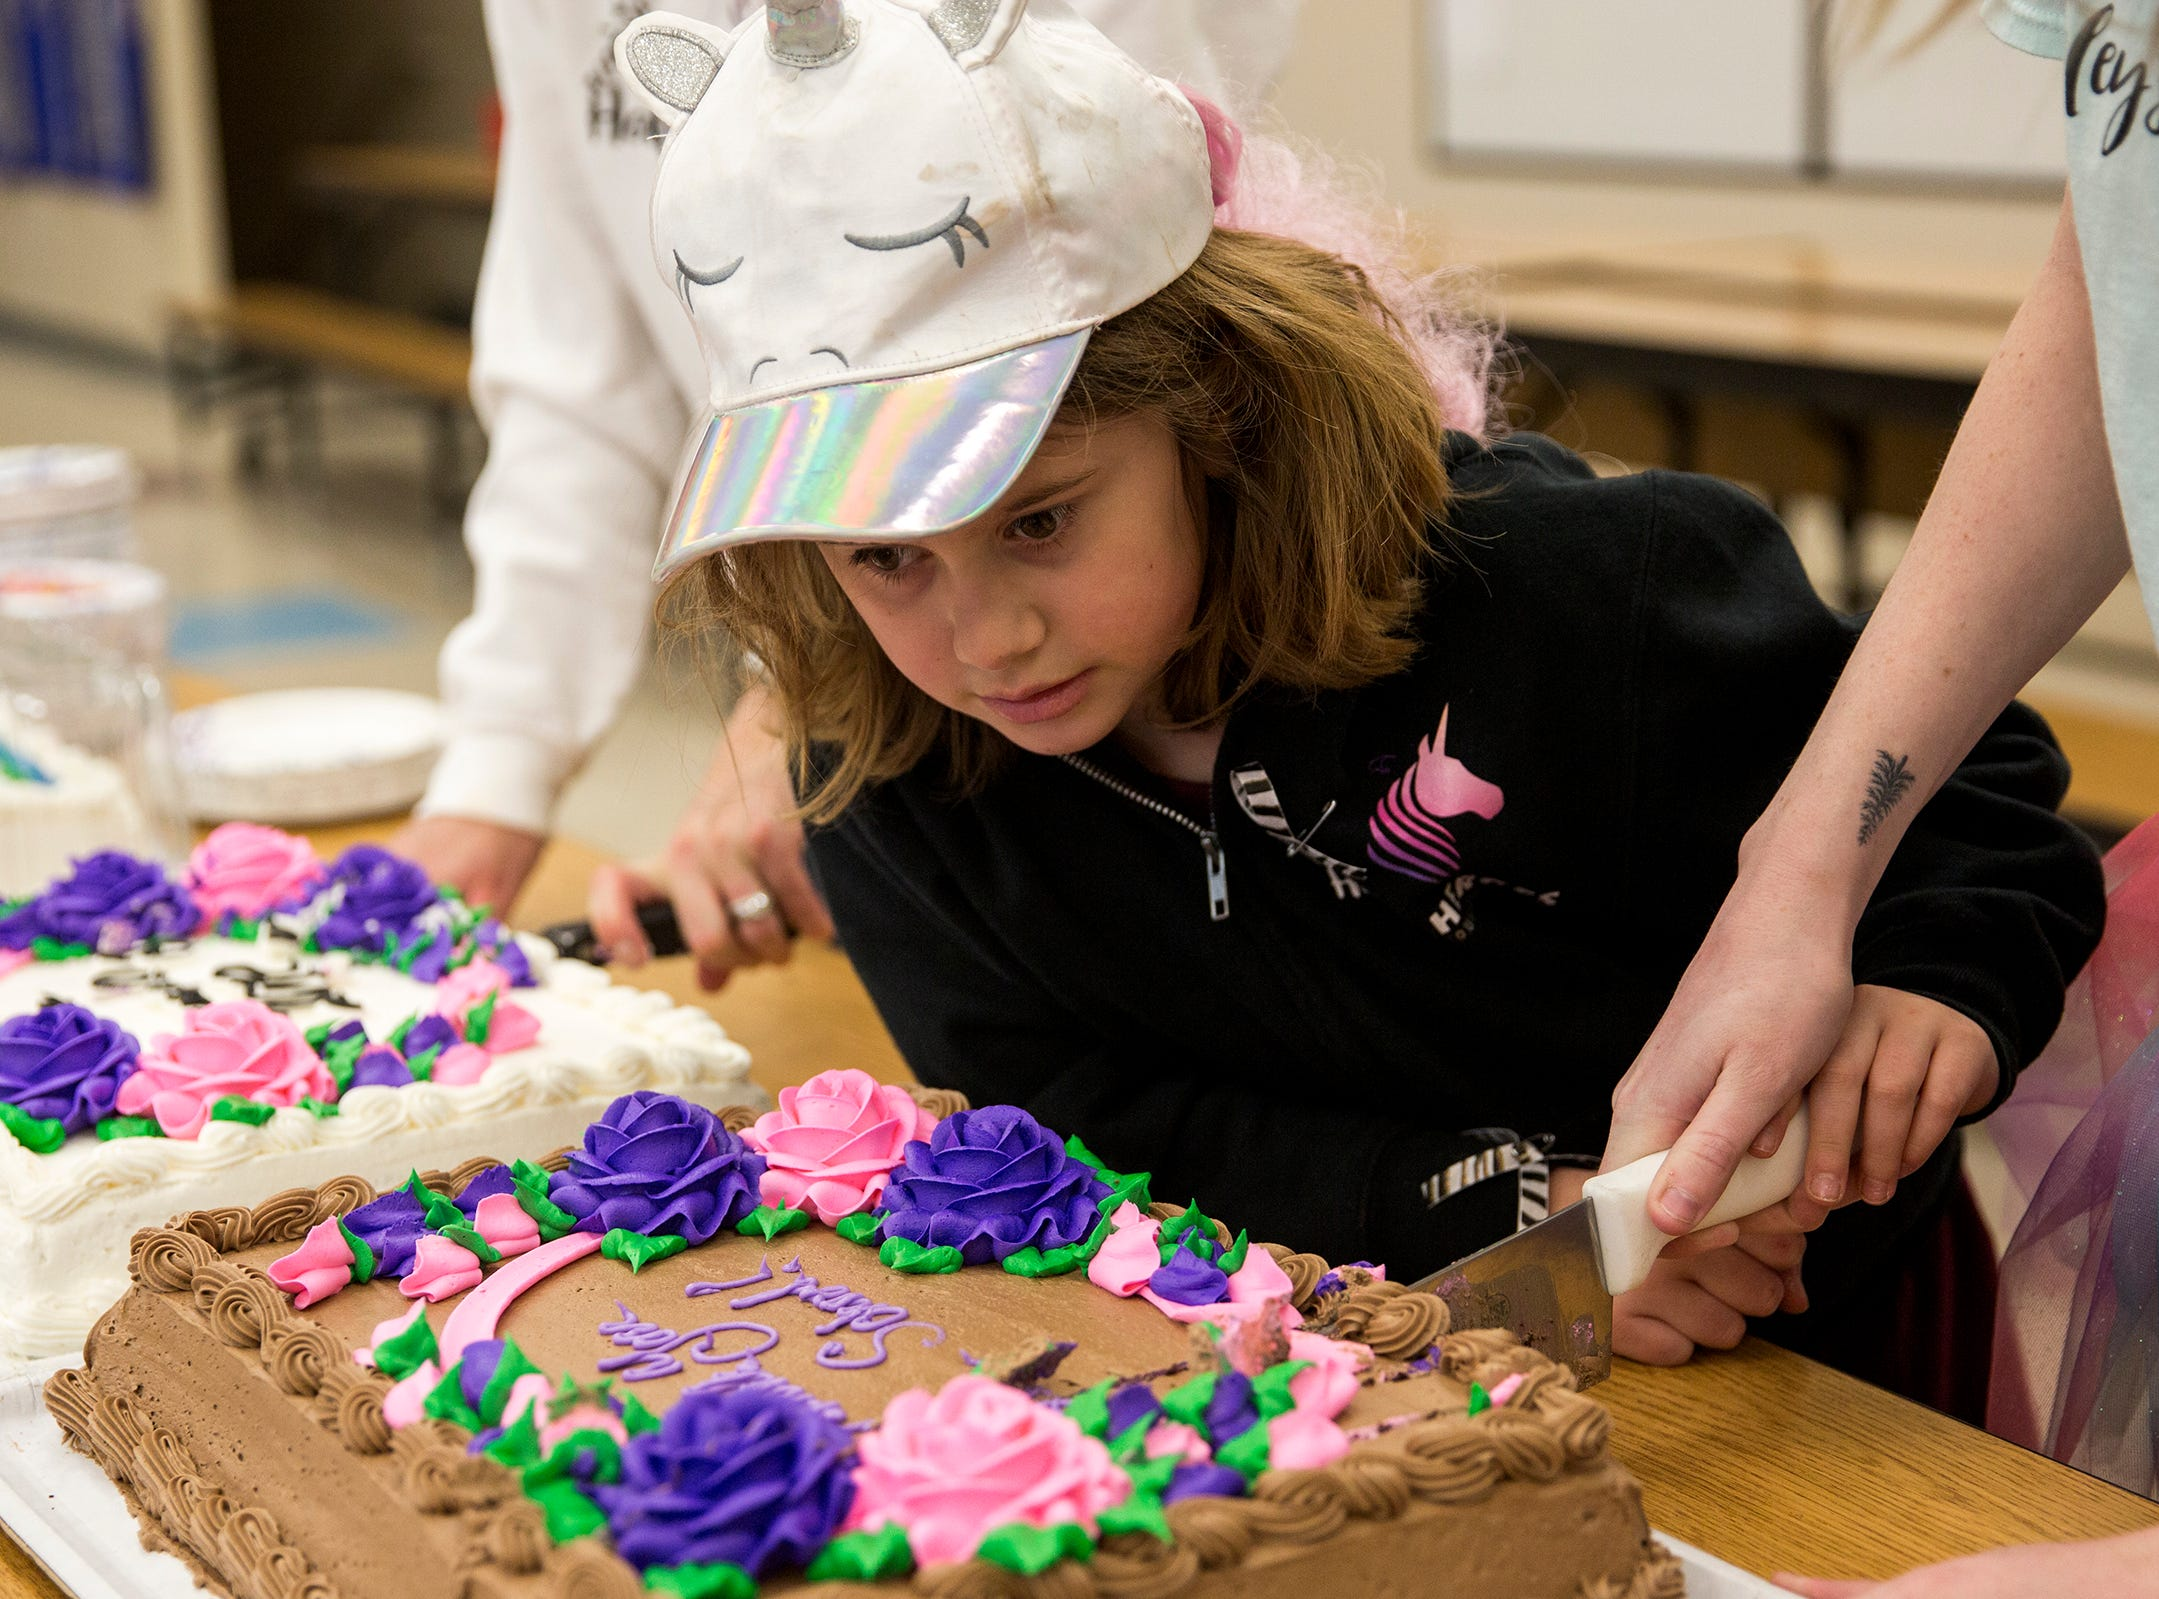 Haley Pollman, a third grader, helps serve cake on rare disease day at Lee Elementary School in Salem on Thursday, Feb. 28, 2019. A fundraiser at Lee recently raised $1,700 for Batten disease which Haley has.